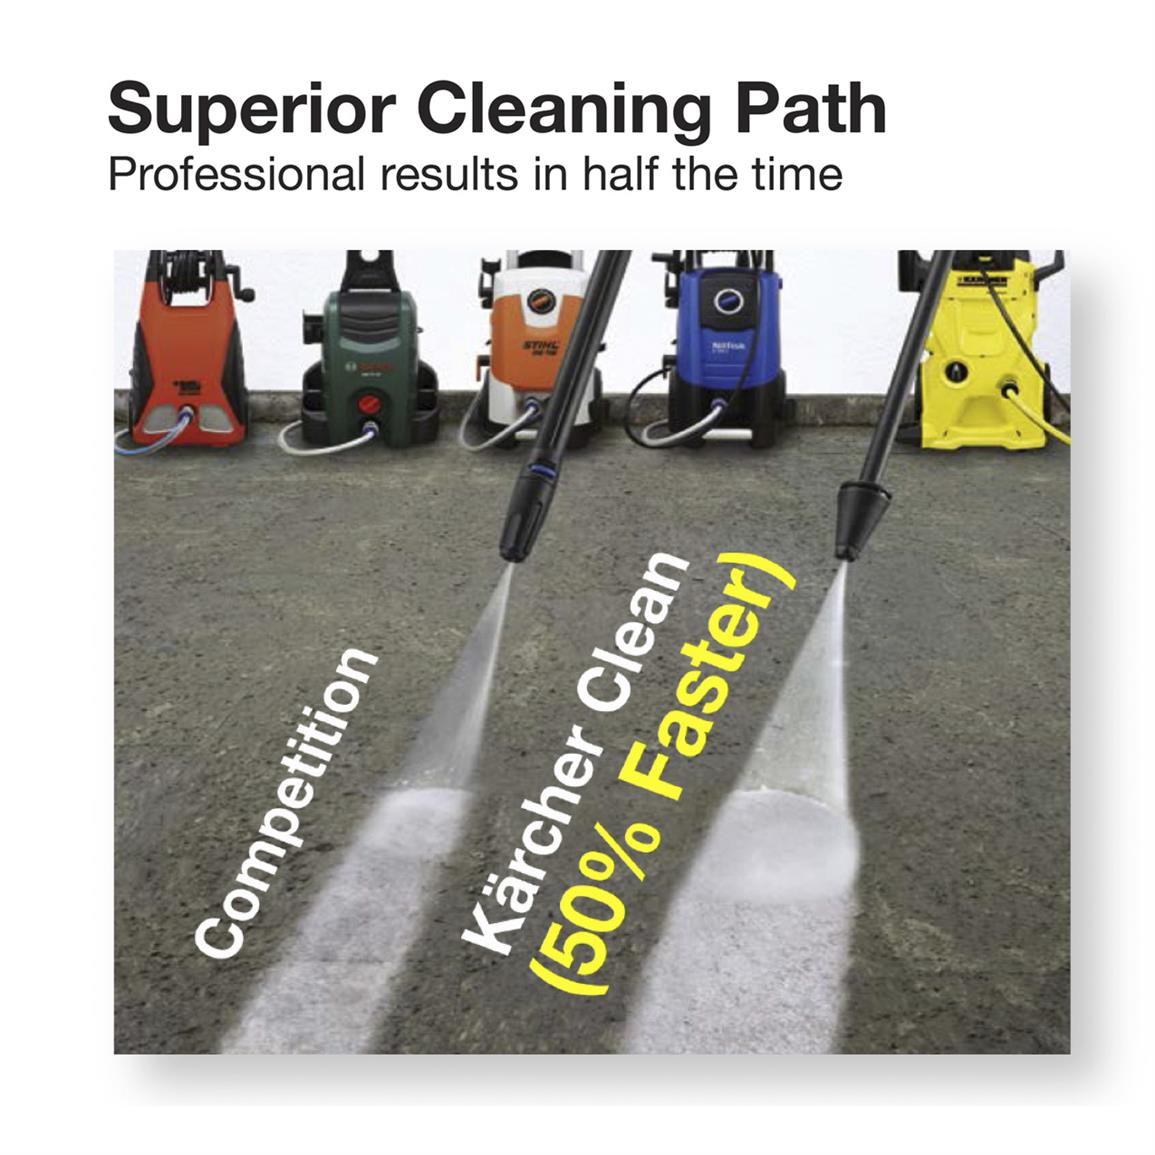 Superior Cleaning Path